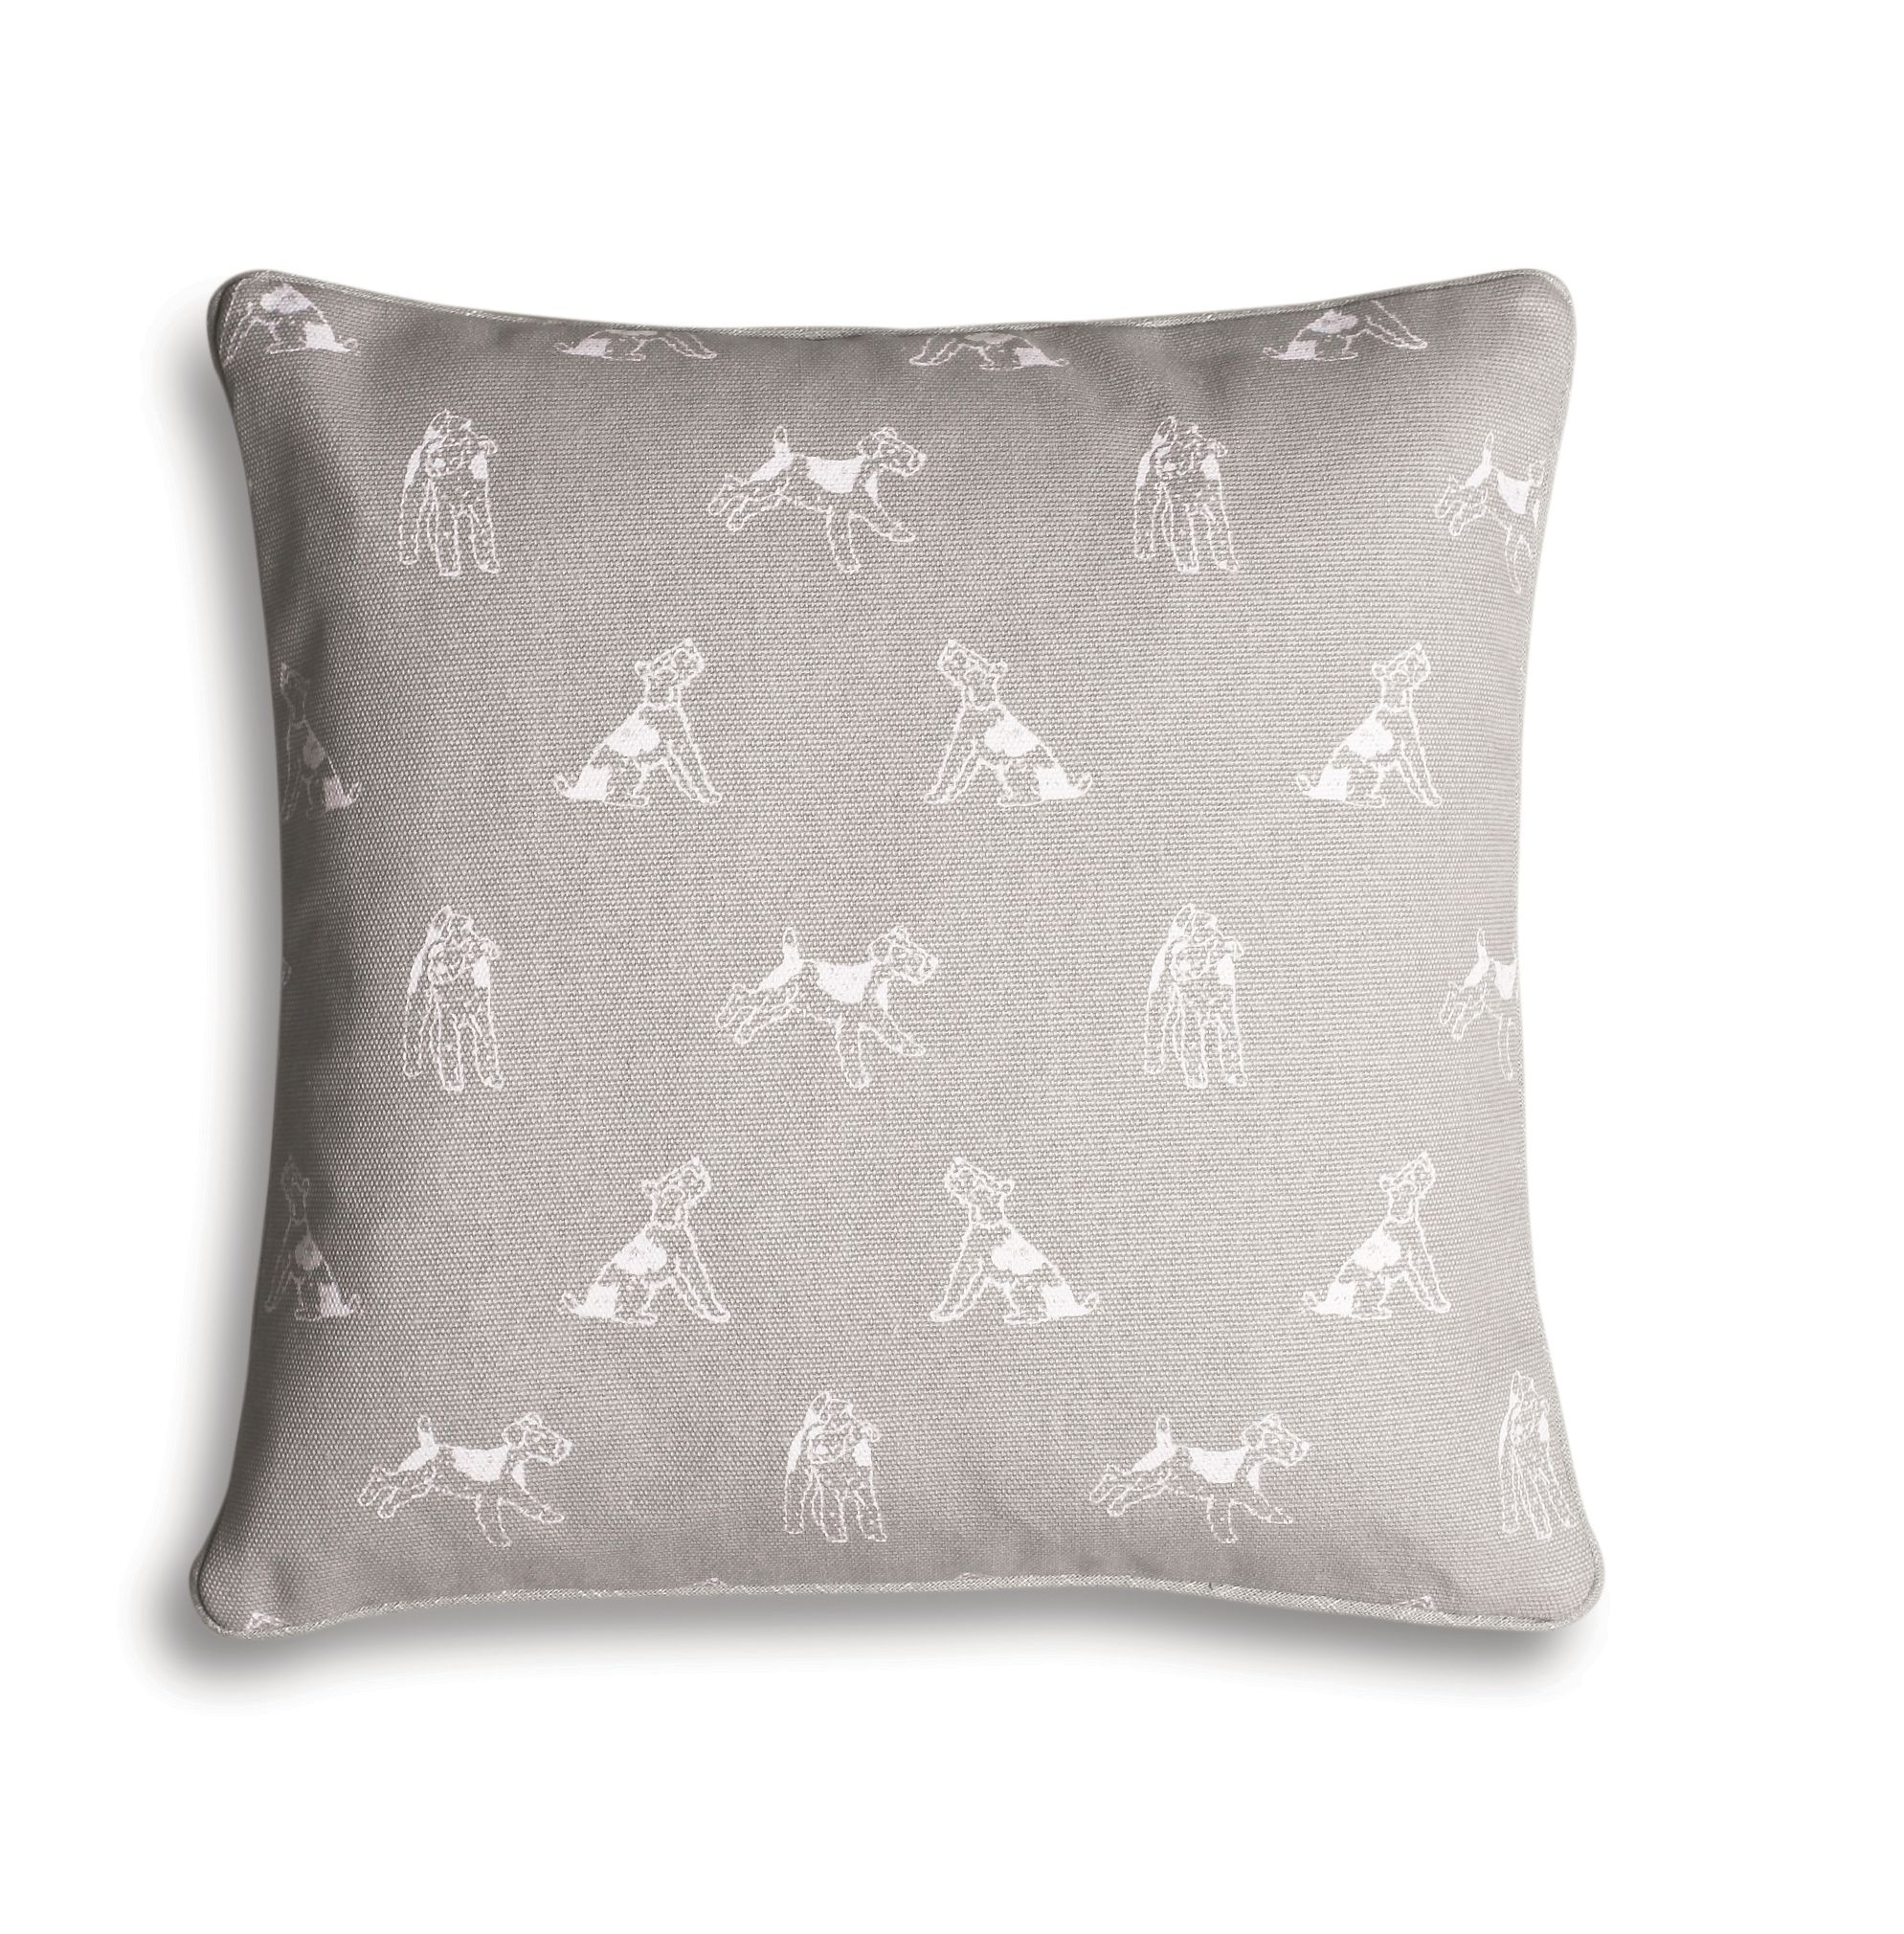 Grey Bertie print cushion